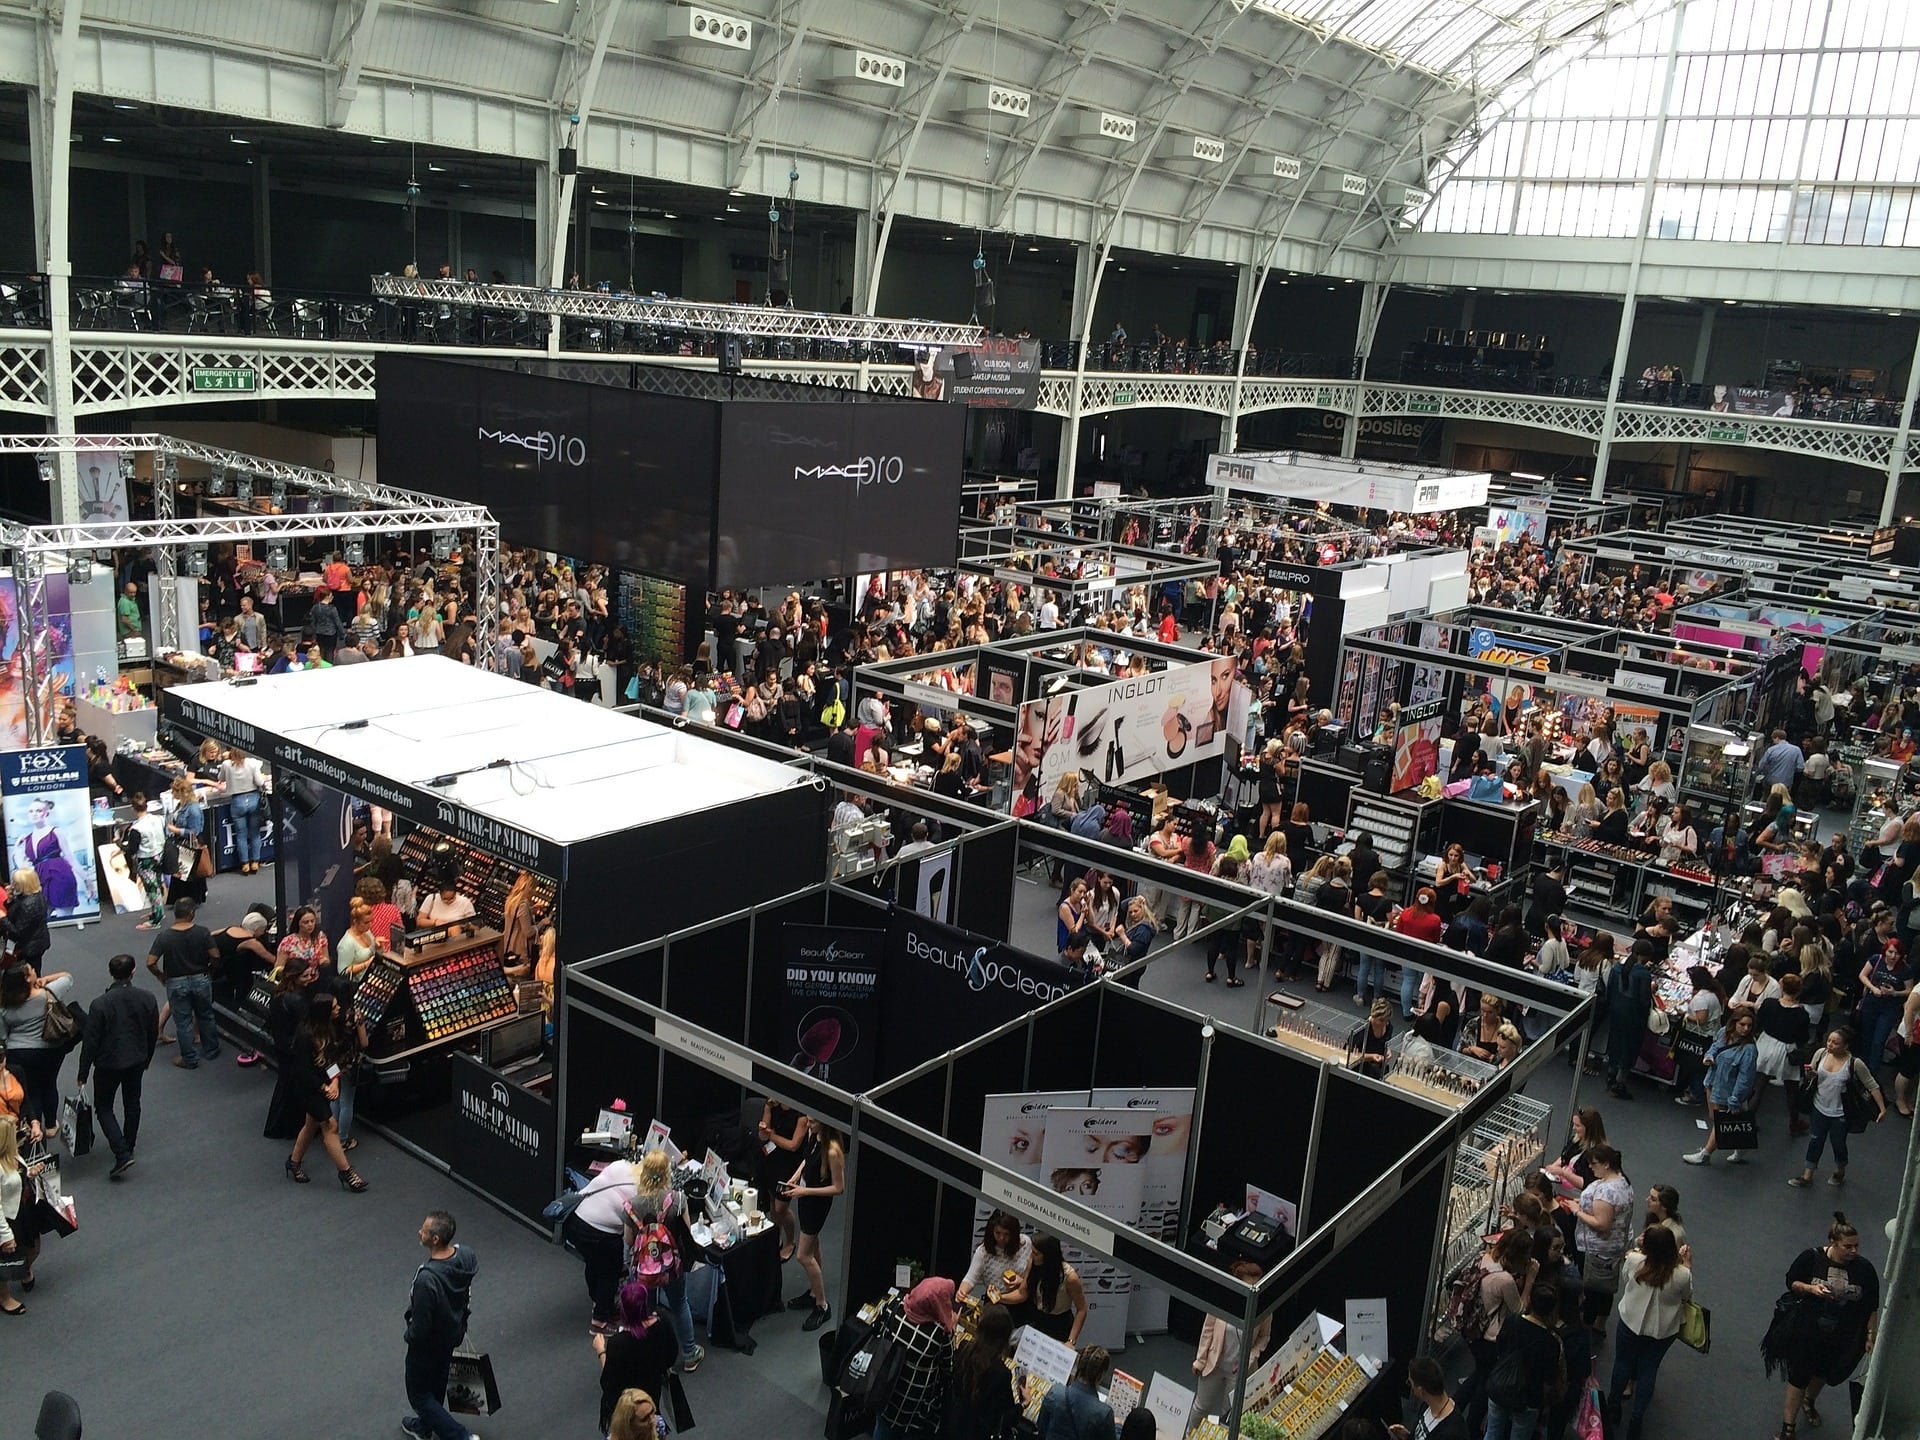 Top Trade Shows for Marketing, Digital, Technology and Business